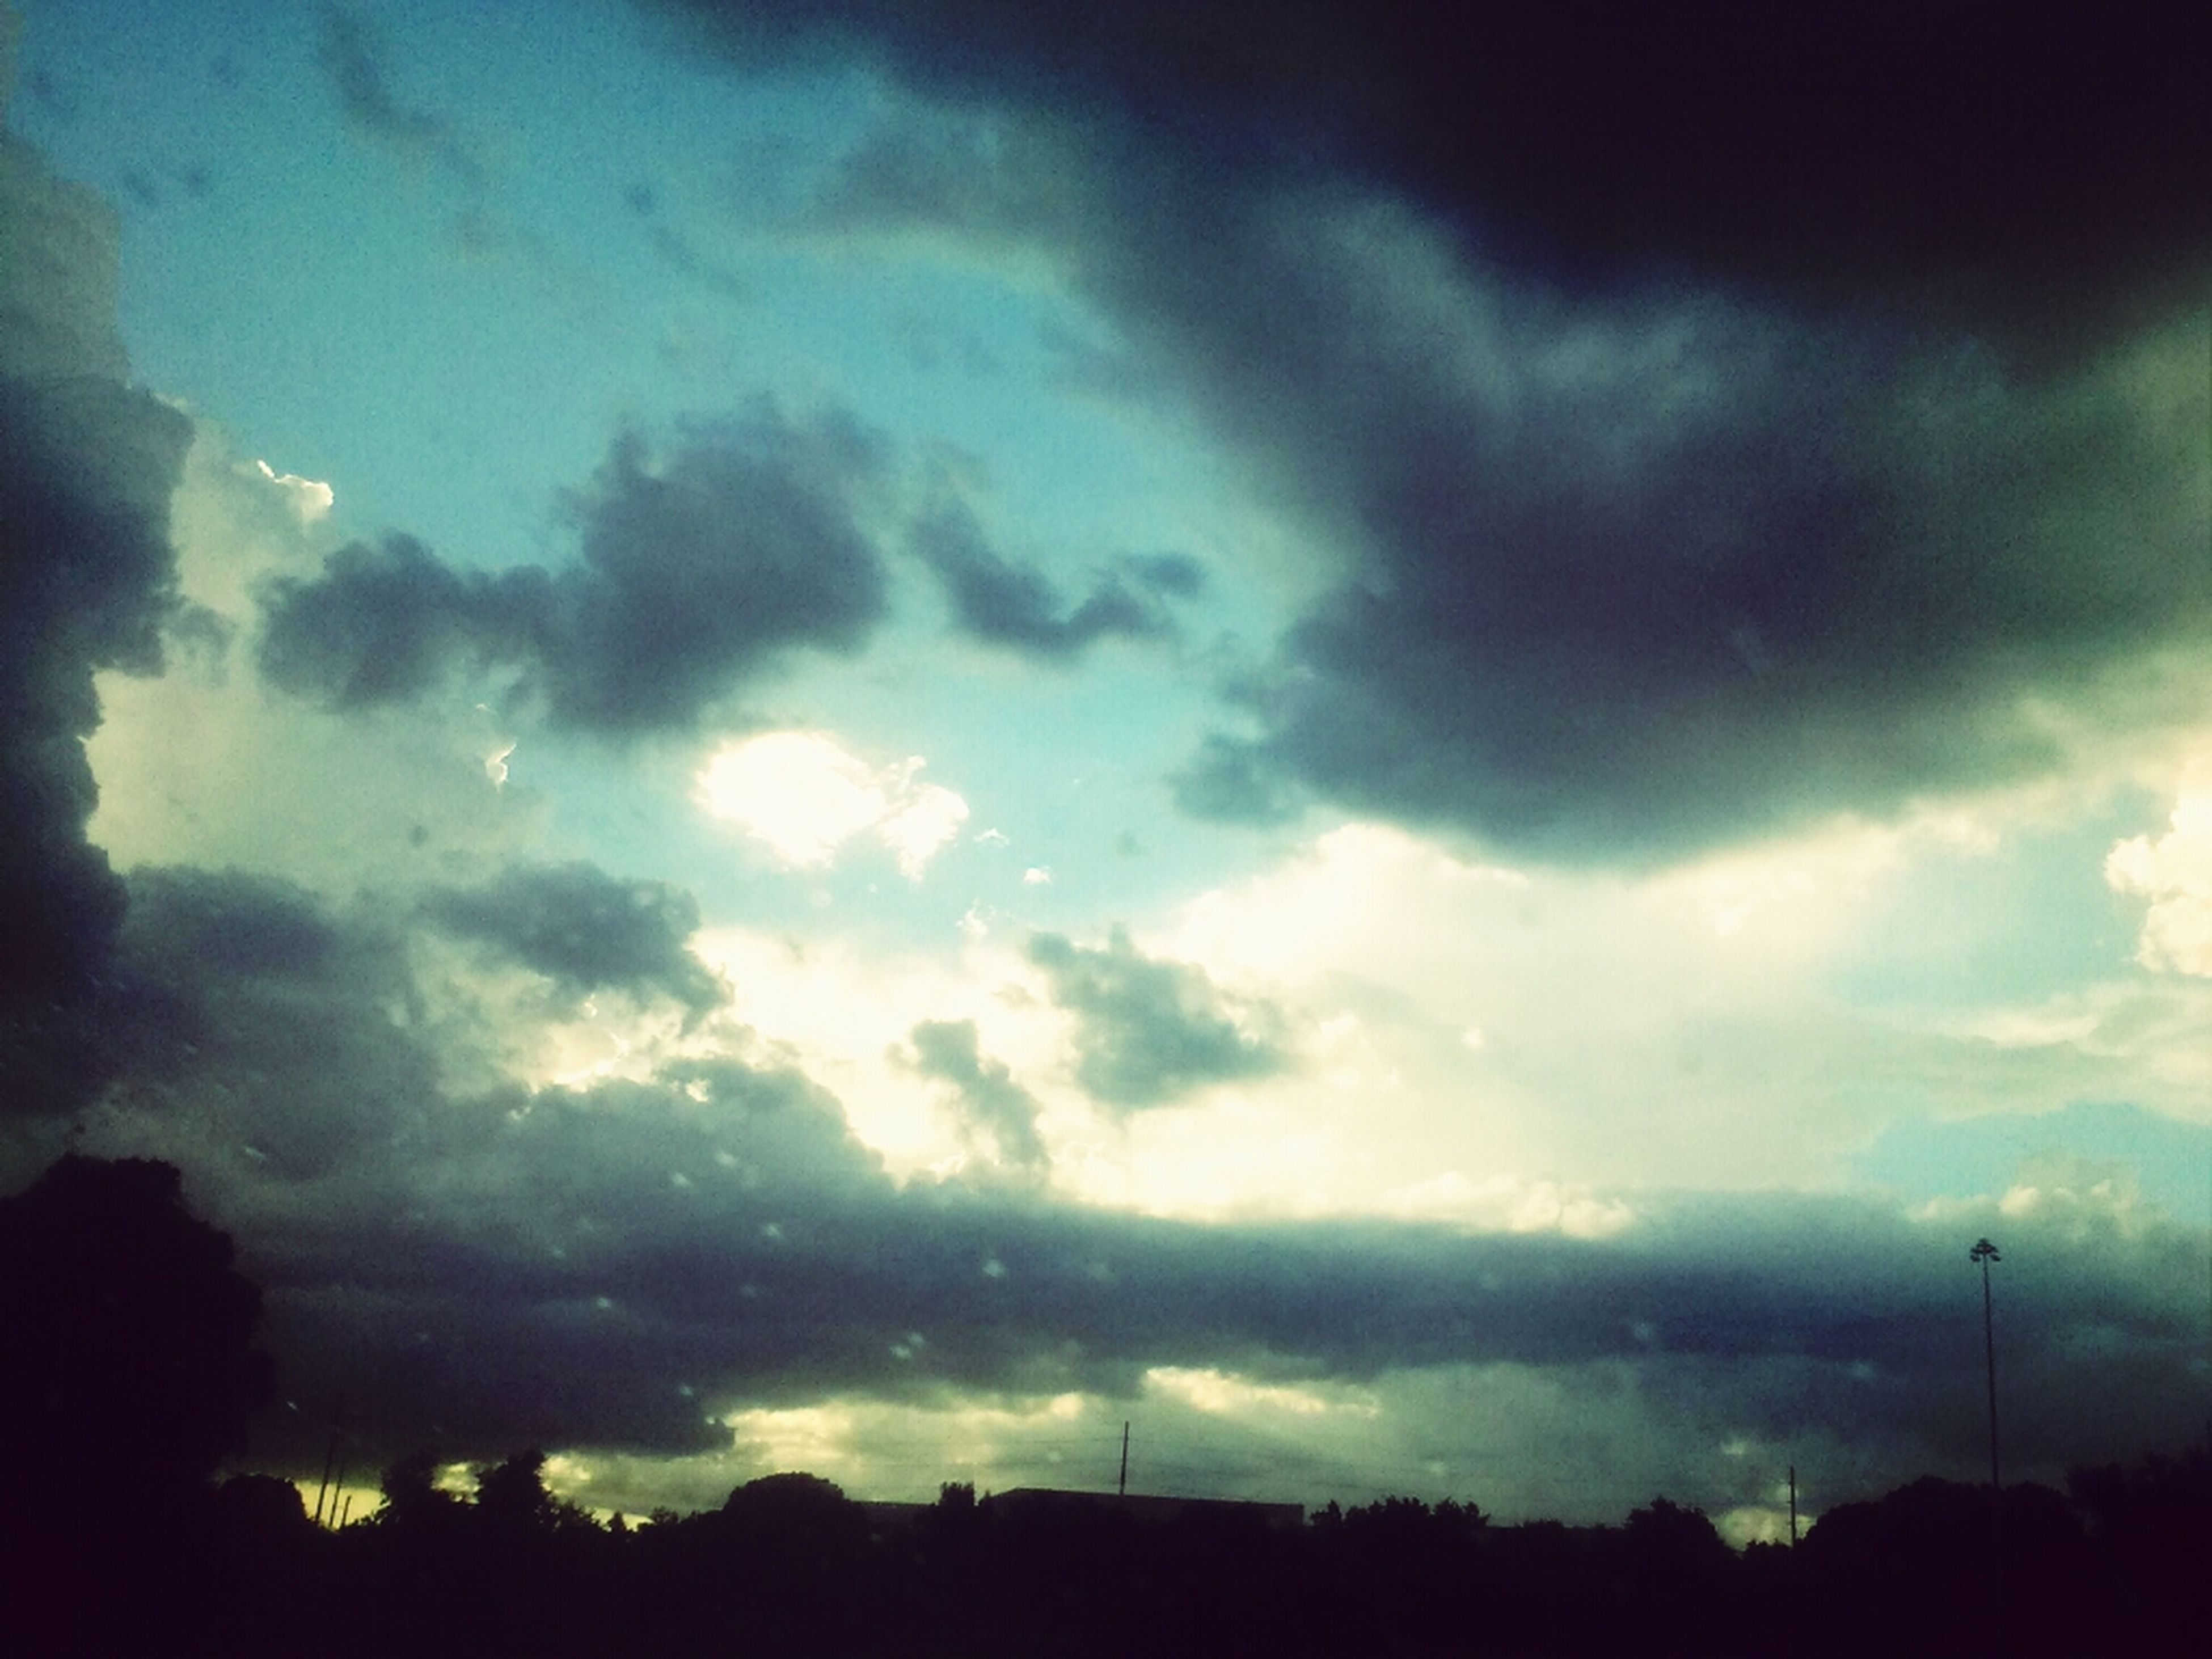 sky, silhouette, cloud - sky, cloudy, weather, low angle view, storm cloud, dusk, overcast, beauty in nature, nature, tranquility, scenics, dramatic sky, cloud, tree, tranquil scene, dark, outdoors, cloudscape